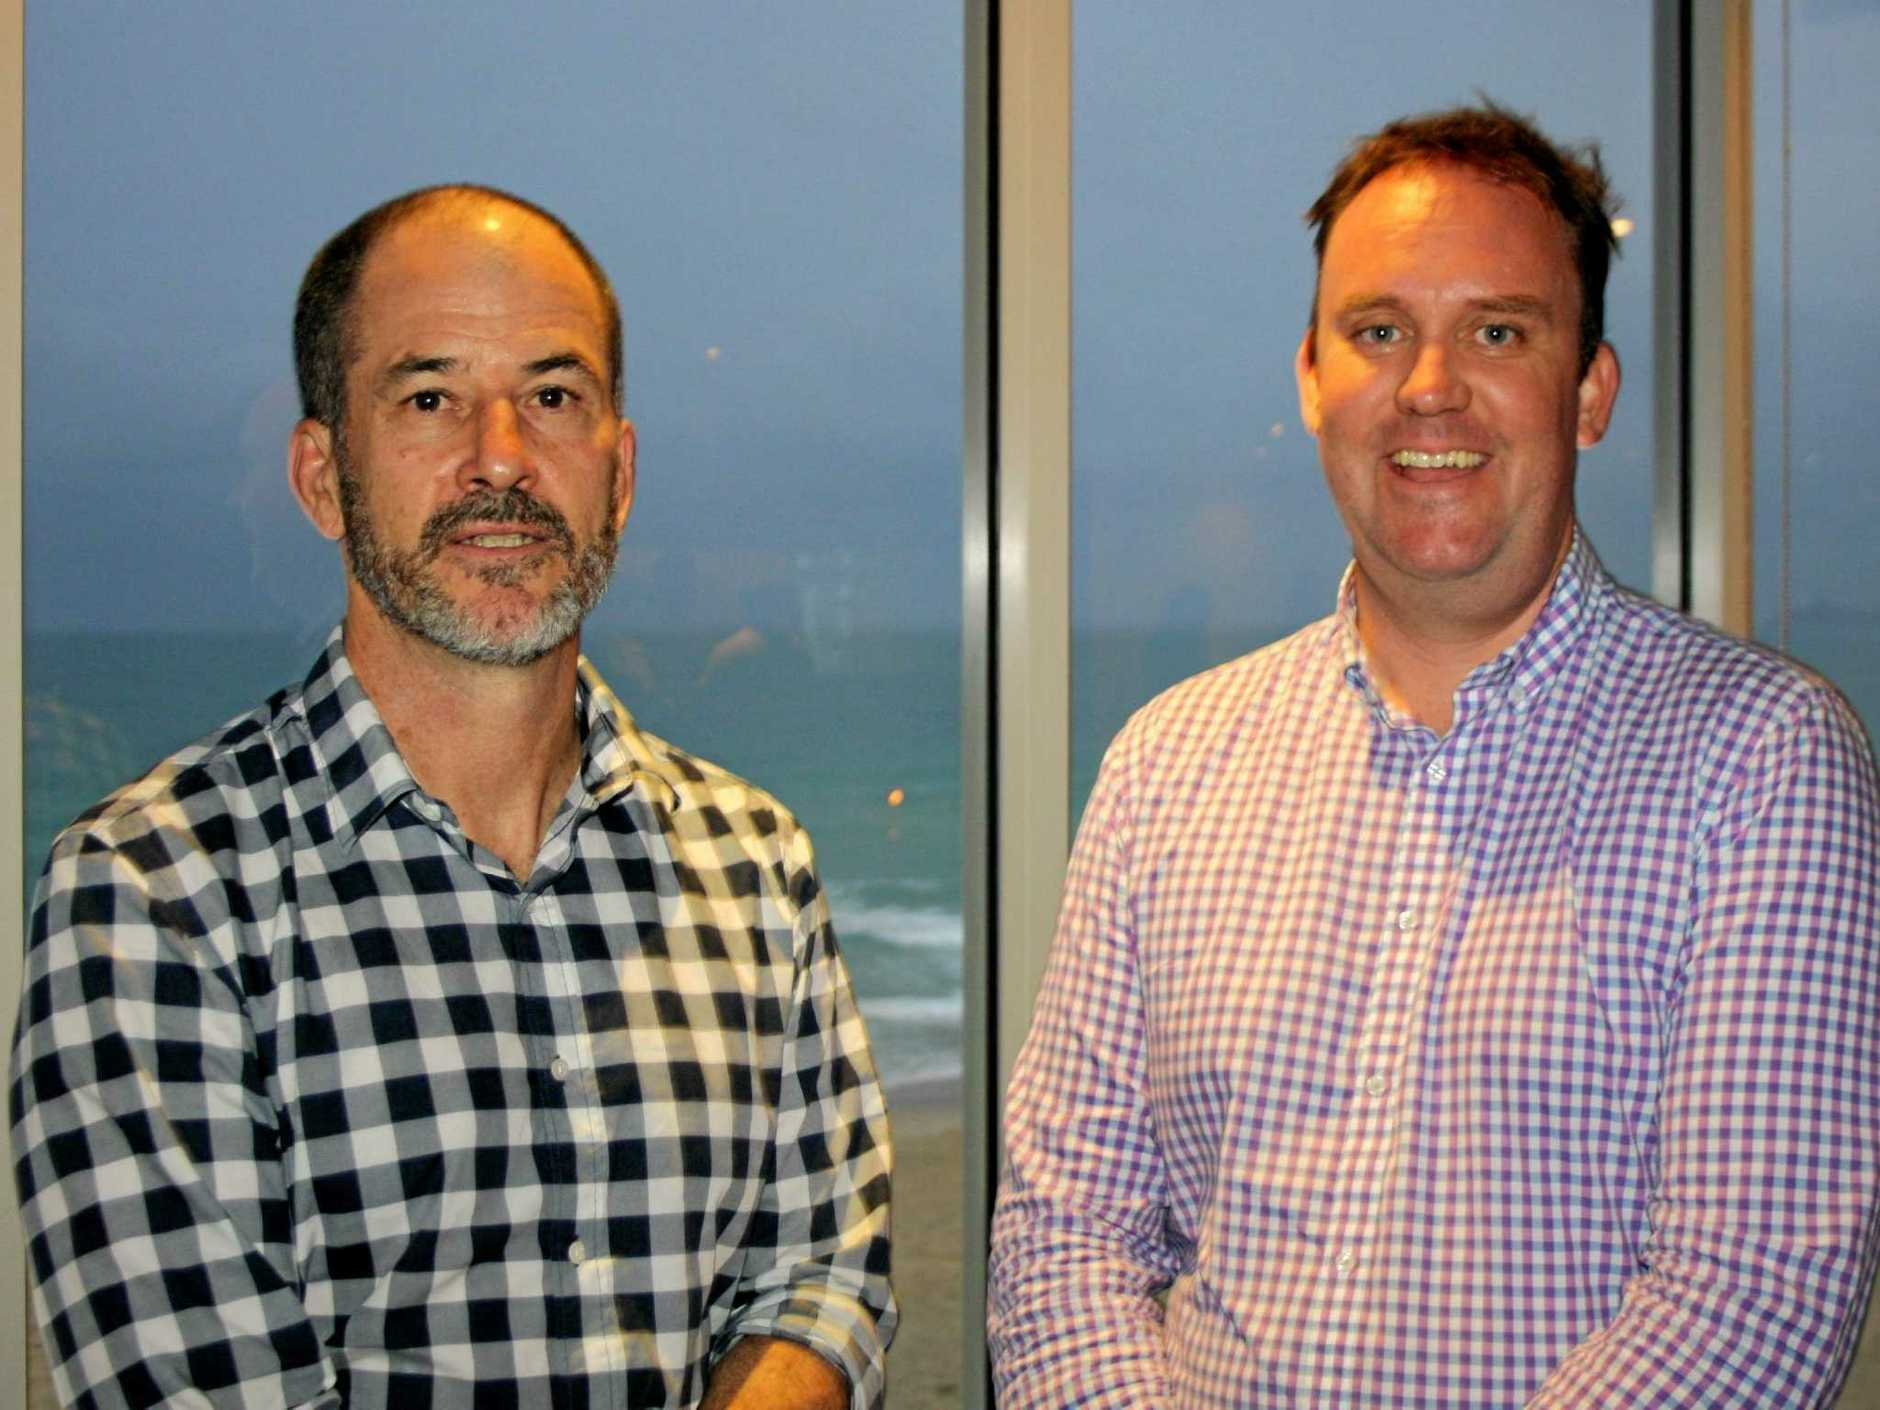 Master Builders (Qld) deputy executive director Paul Bidwell and Sunshine Coast regional manager Michael Hopkins at Maroochy Surf Club for the quarterly industry update.